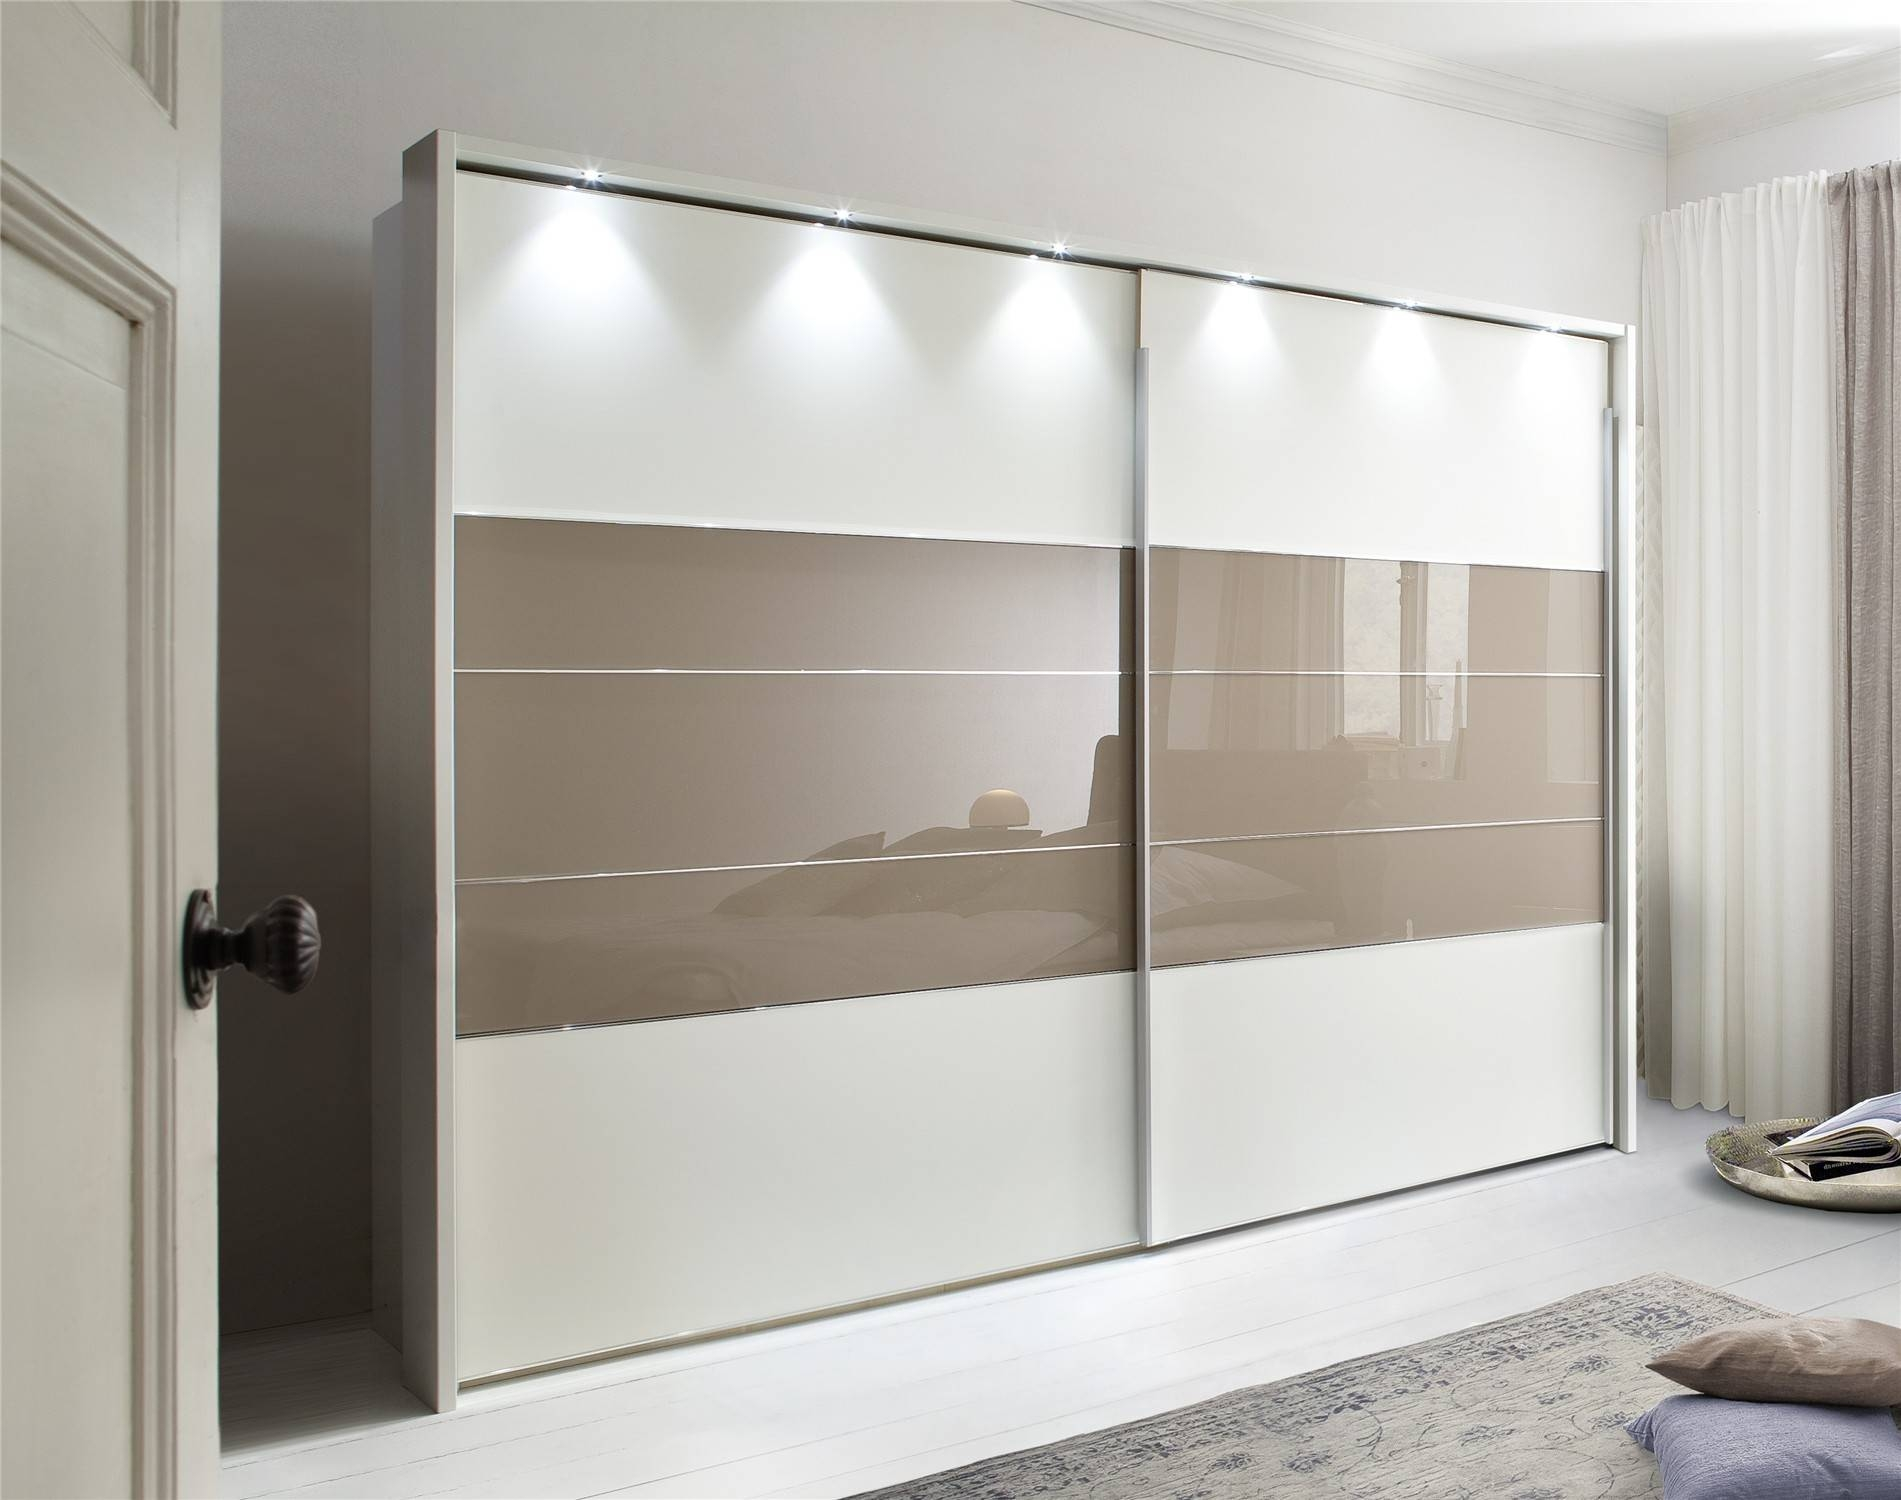 Cheap Wardrobes With Sliding Doors | Hallway Furniture Ideas throughout Cheap Wardrobes (Image 7 of 15)